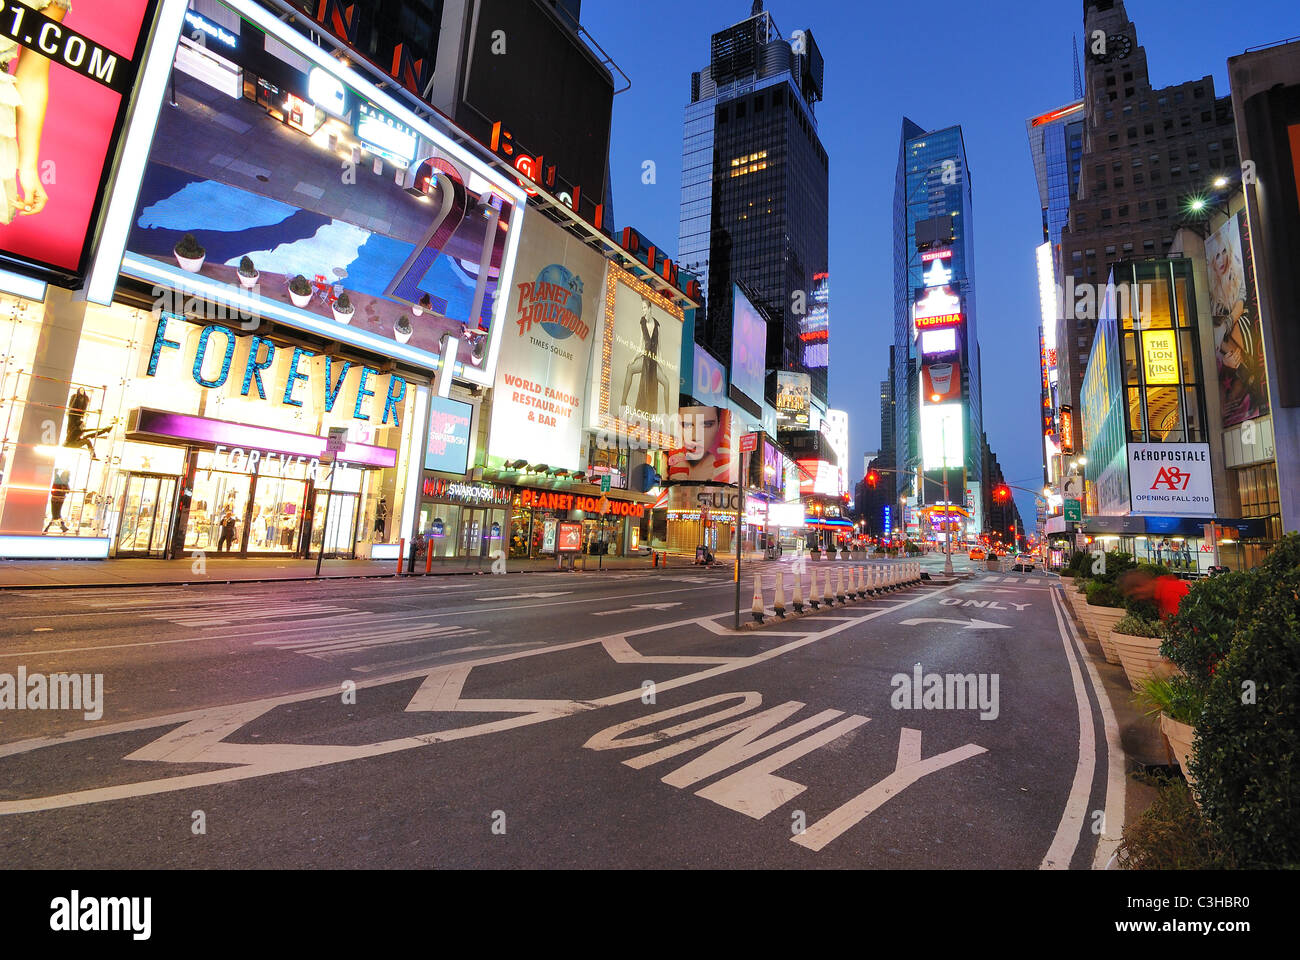 Storefronts and advertisements in an unusually empty Times Square New York City at dawn. Stock Photo